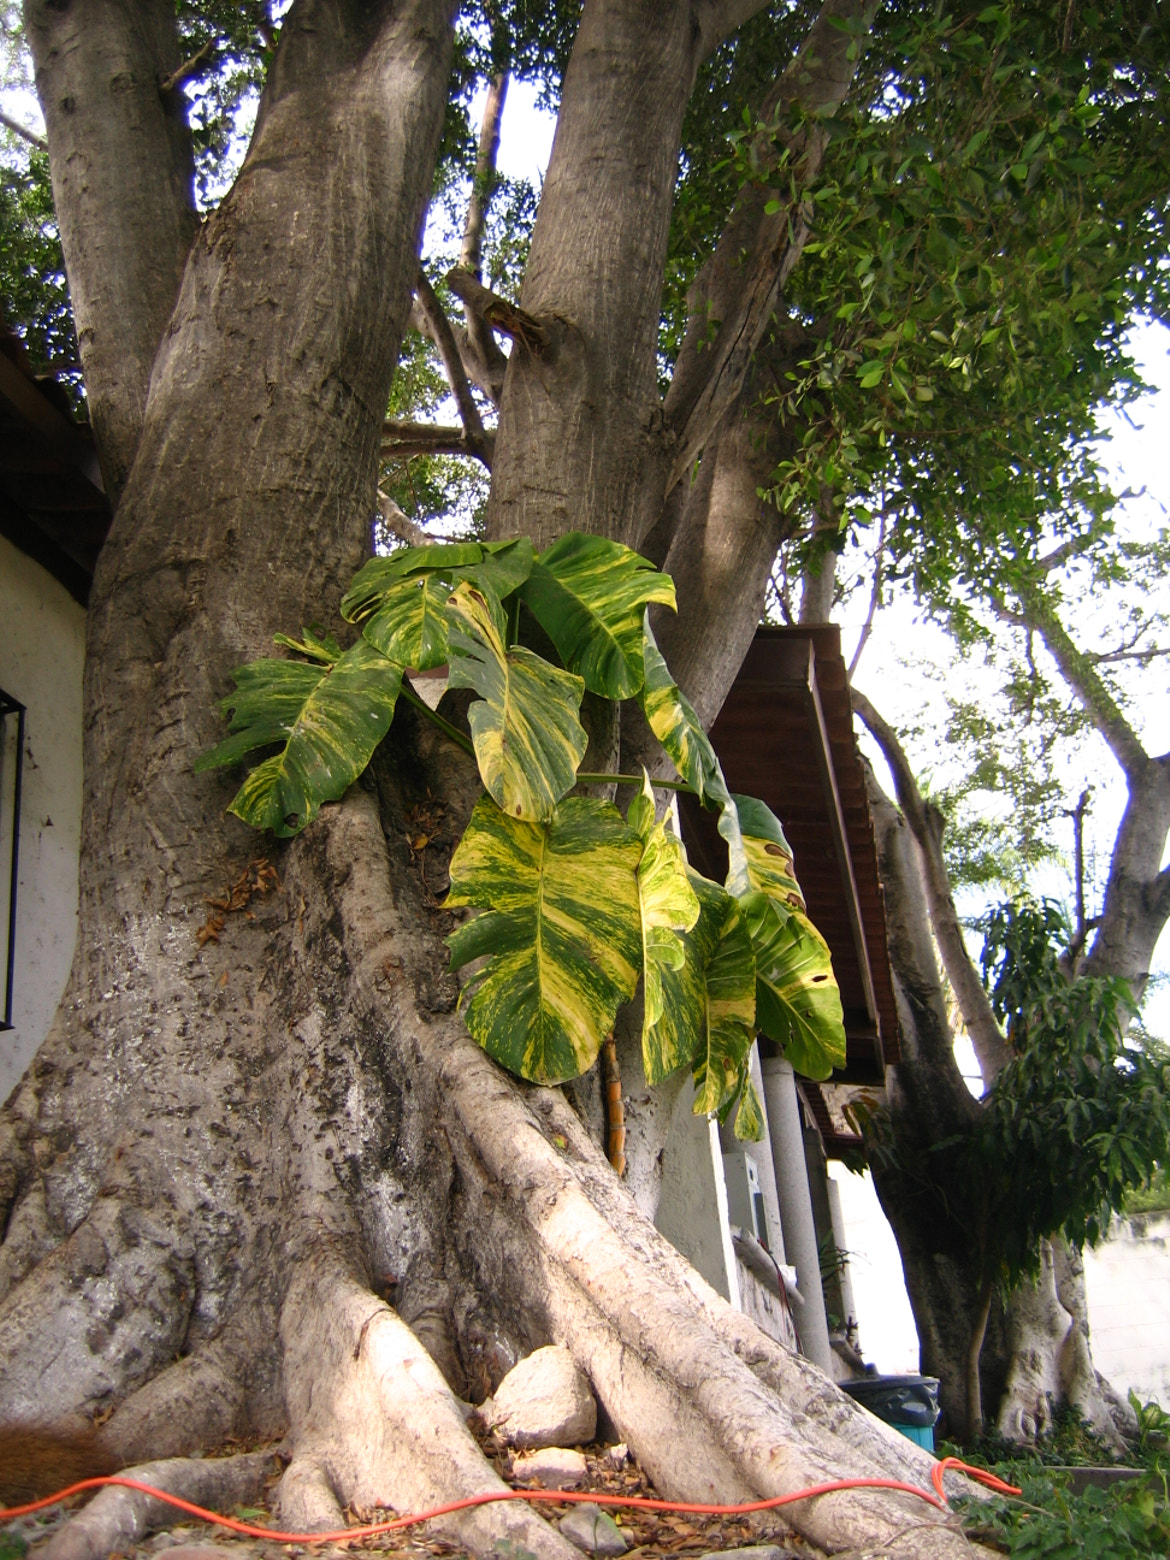 Photograph Plant growing in tree in Tequesquitengo by Ed T-Rod on 500px